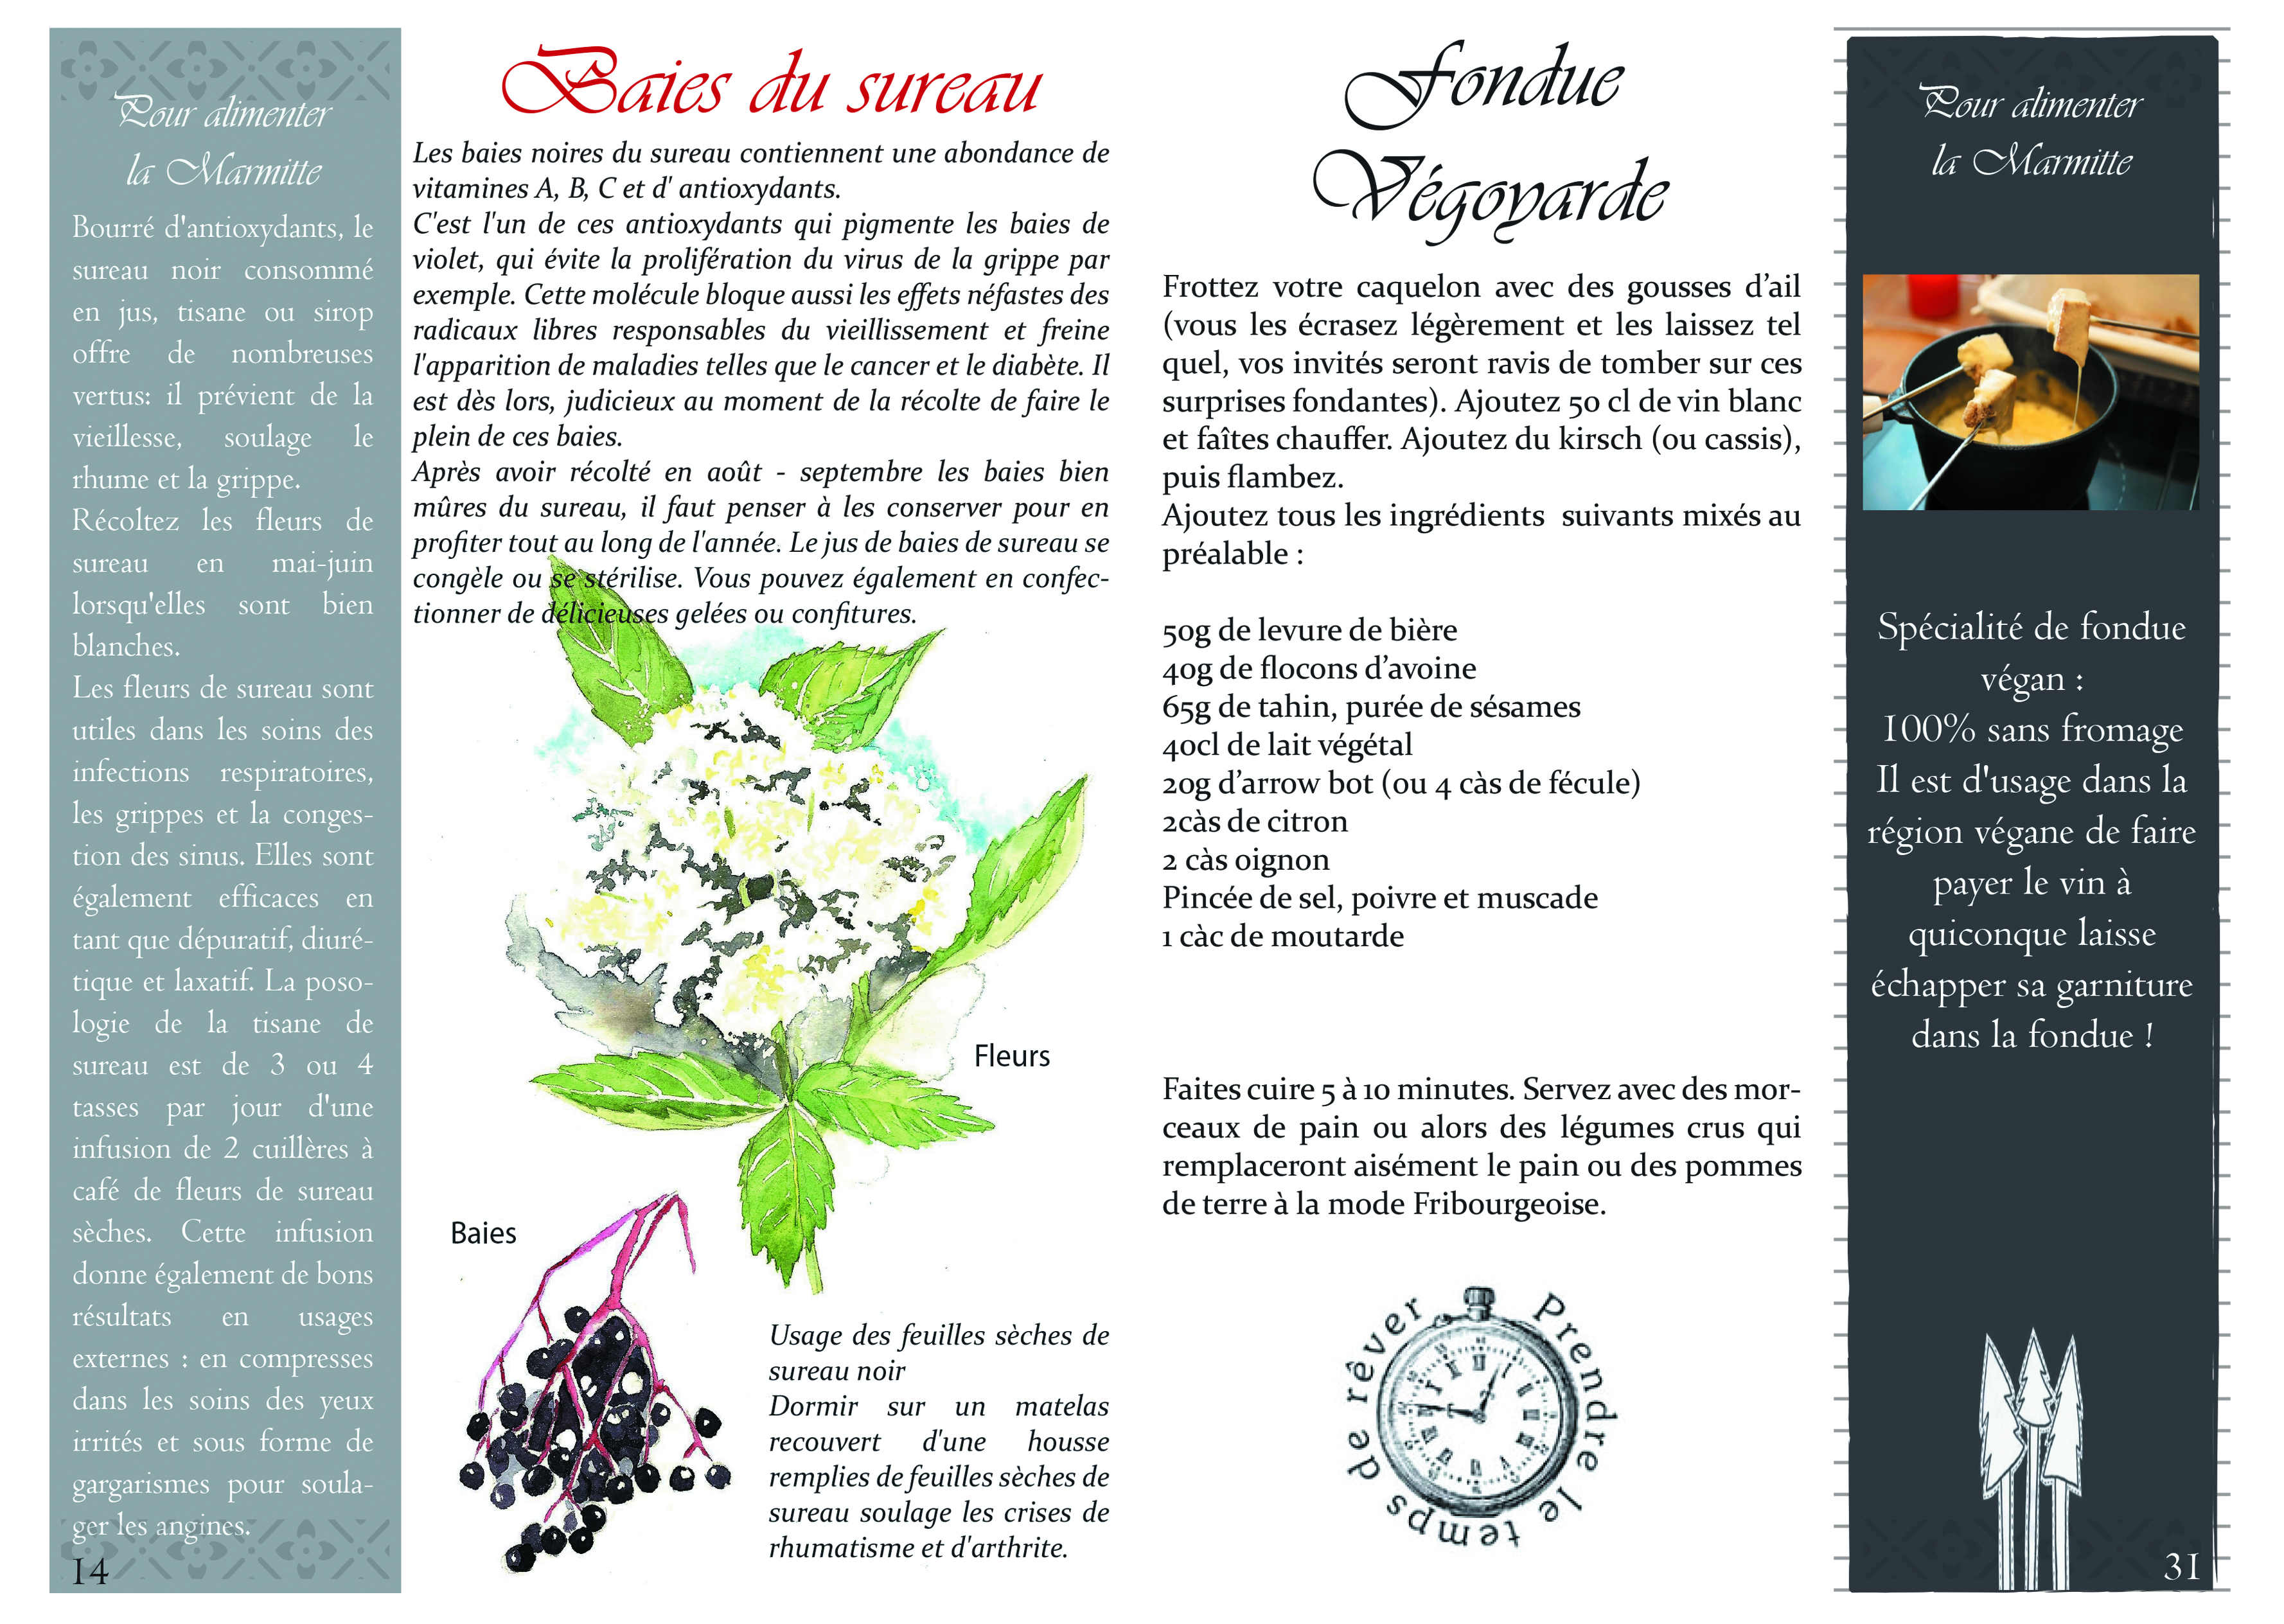 Page 14-31